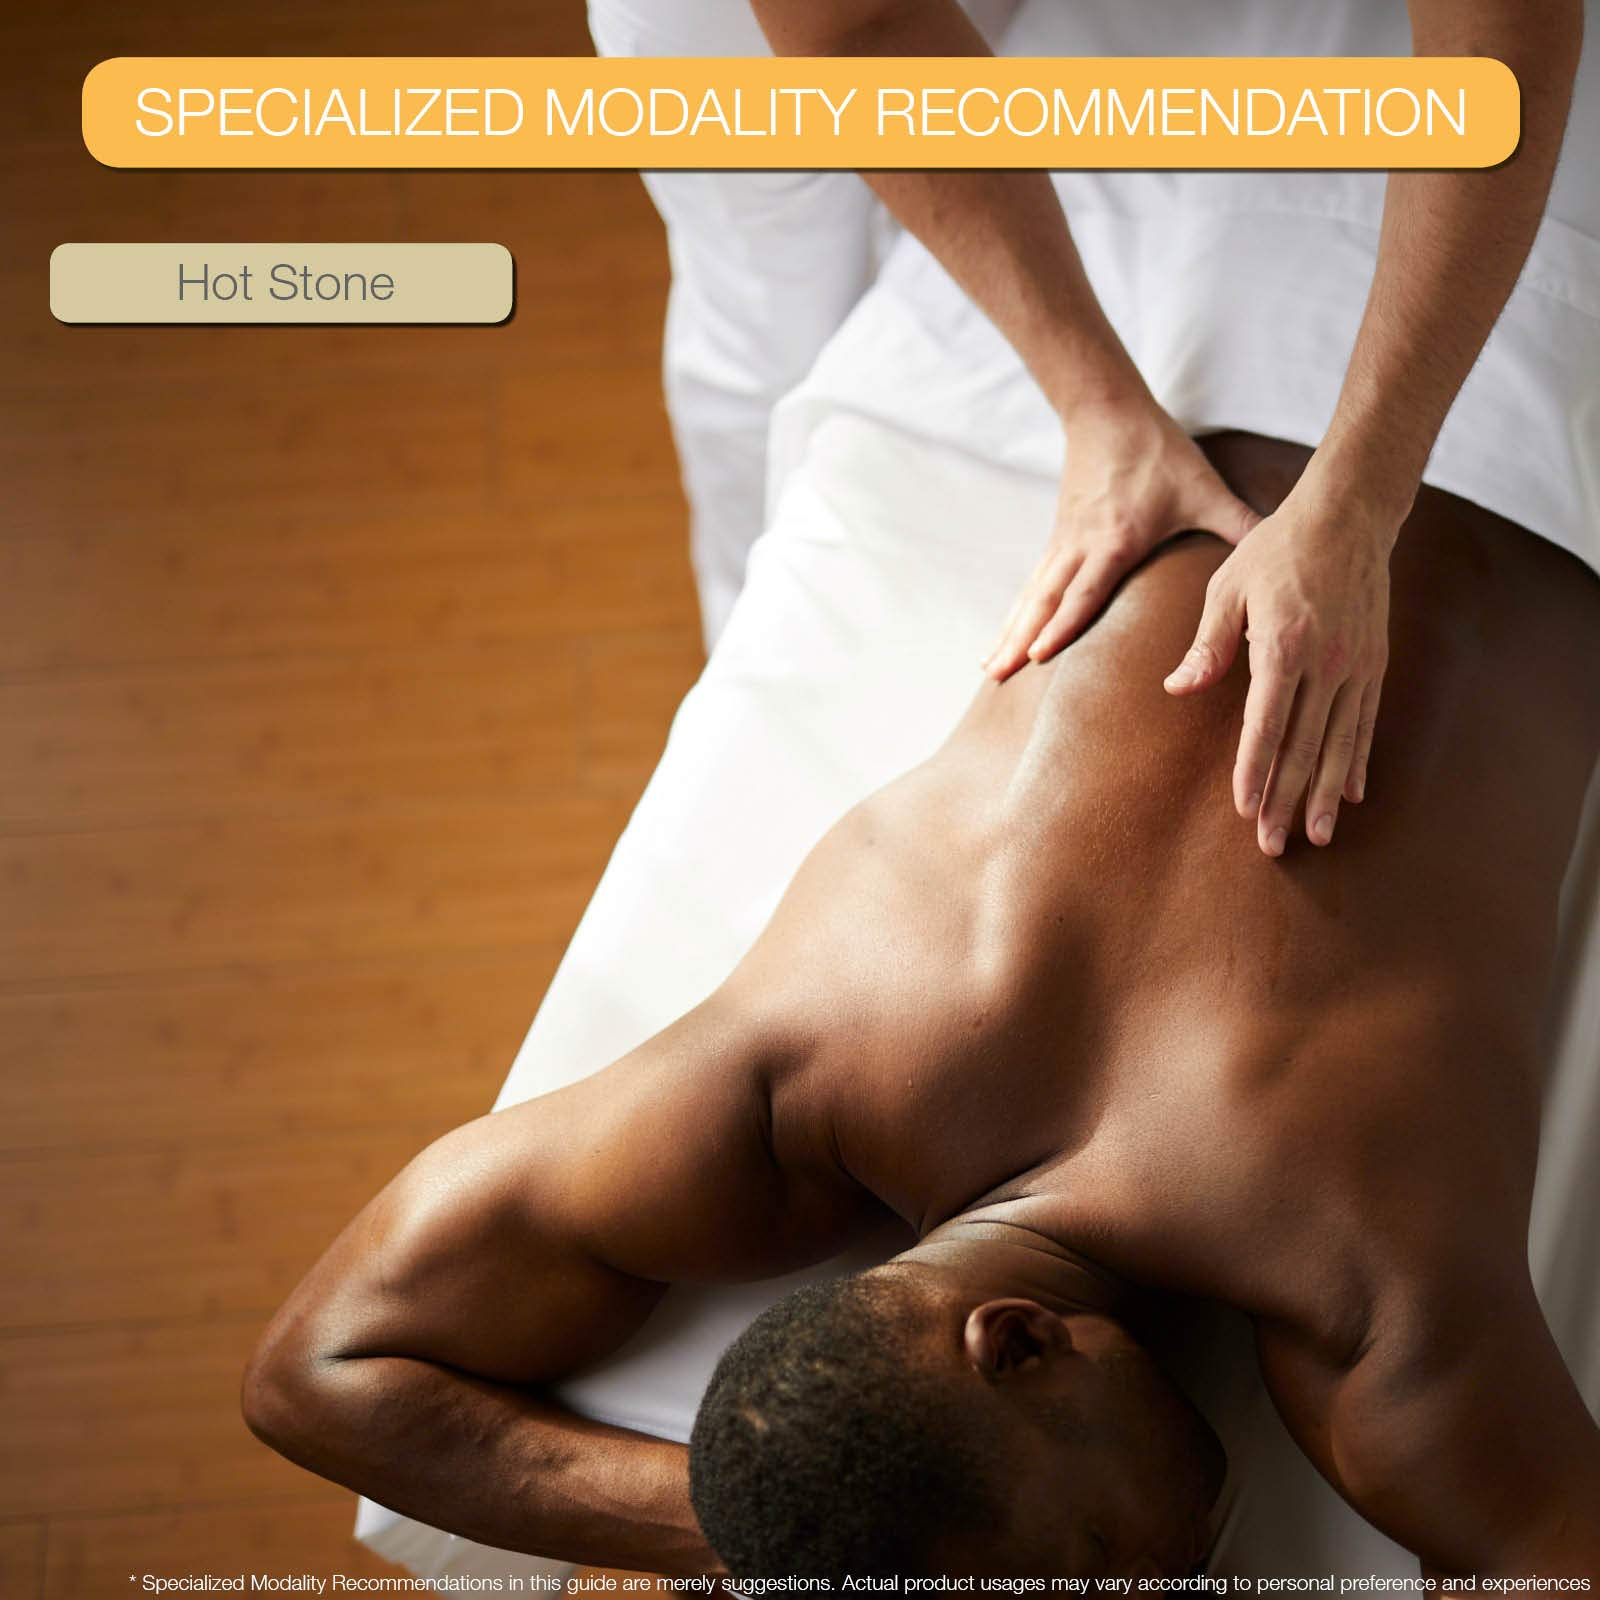 Bon Vital' Original Massage Oil for a Versatile Massage Foundation to Relax Sore Muscles and Repair Dry Skin, Most Requested, Best Massage Oil on Market, Unbeatable Consistency and Quality, 5 Gal Pail by Bon Vital (Image #4)